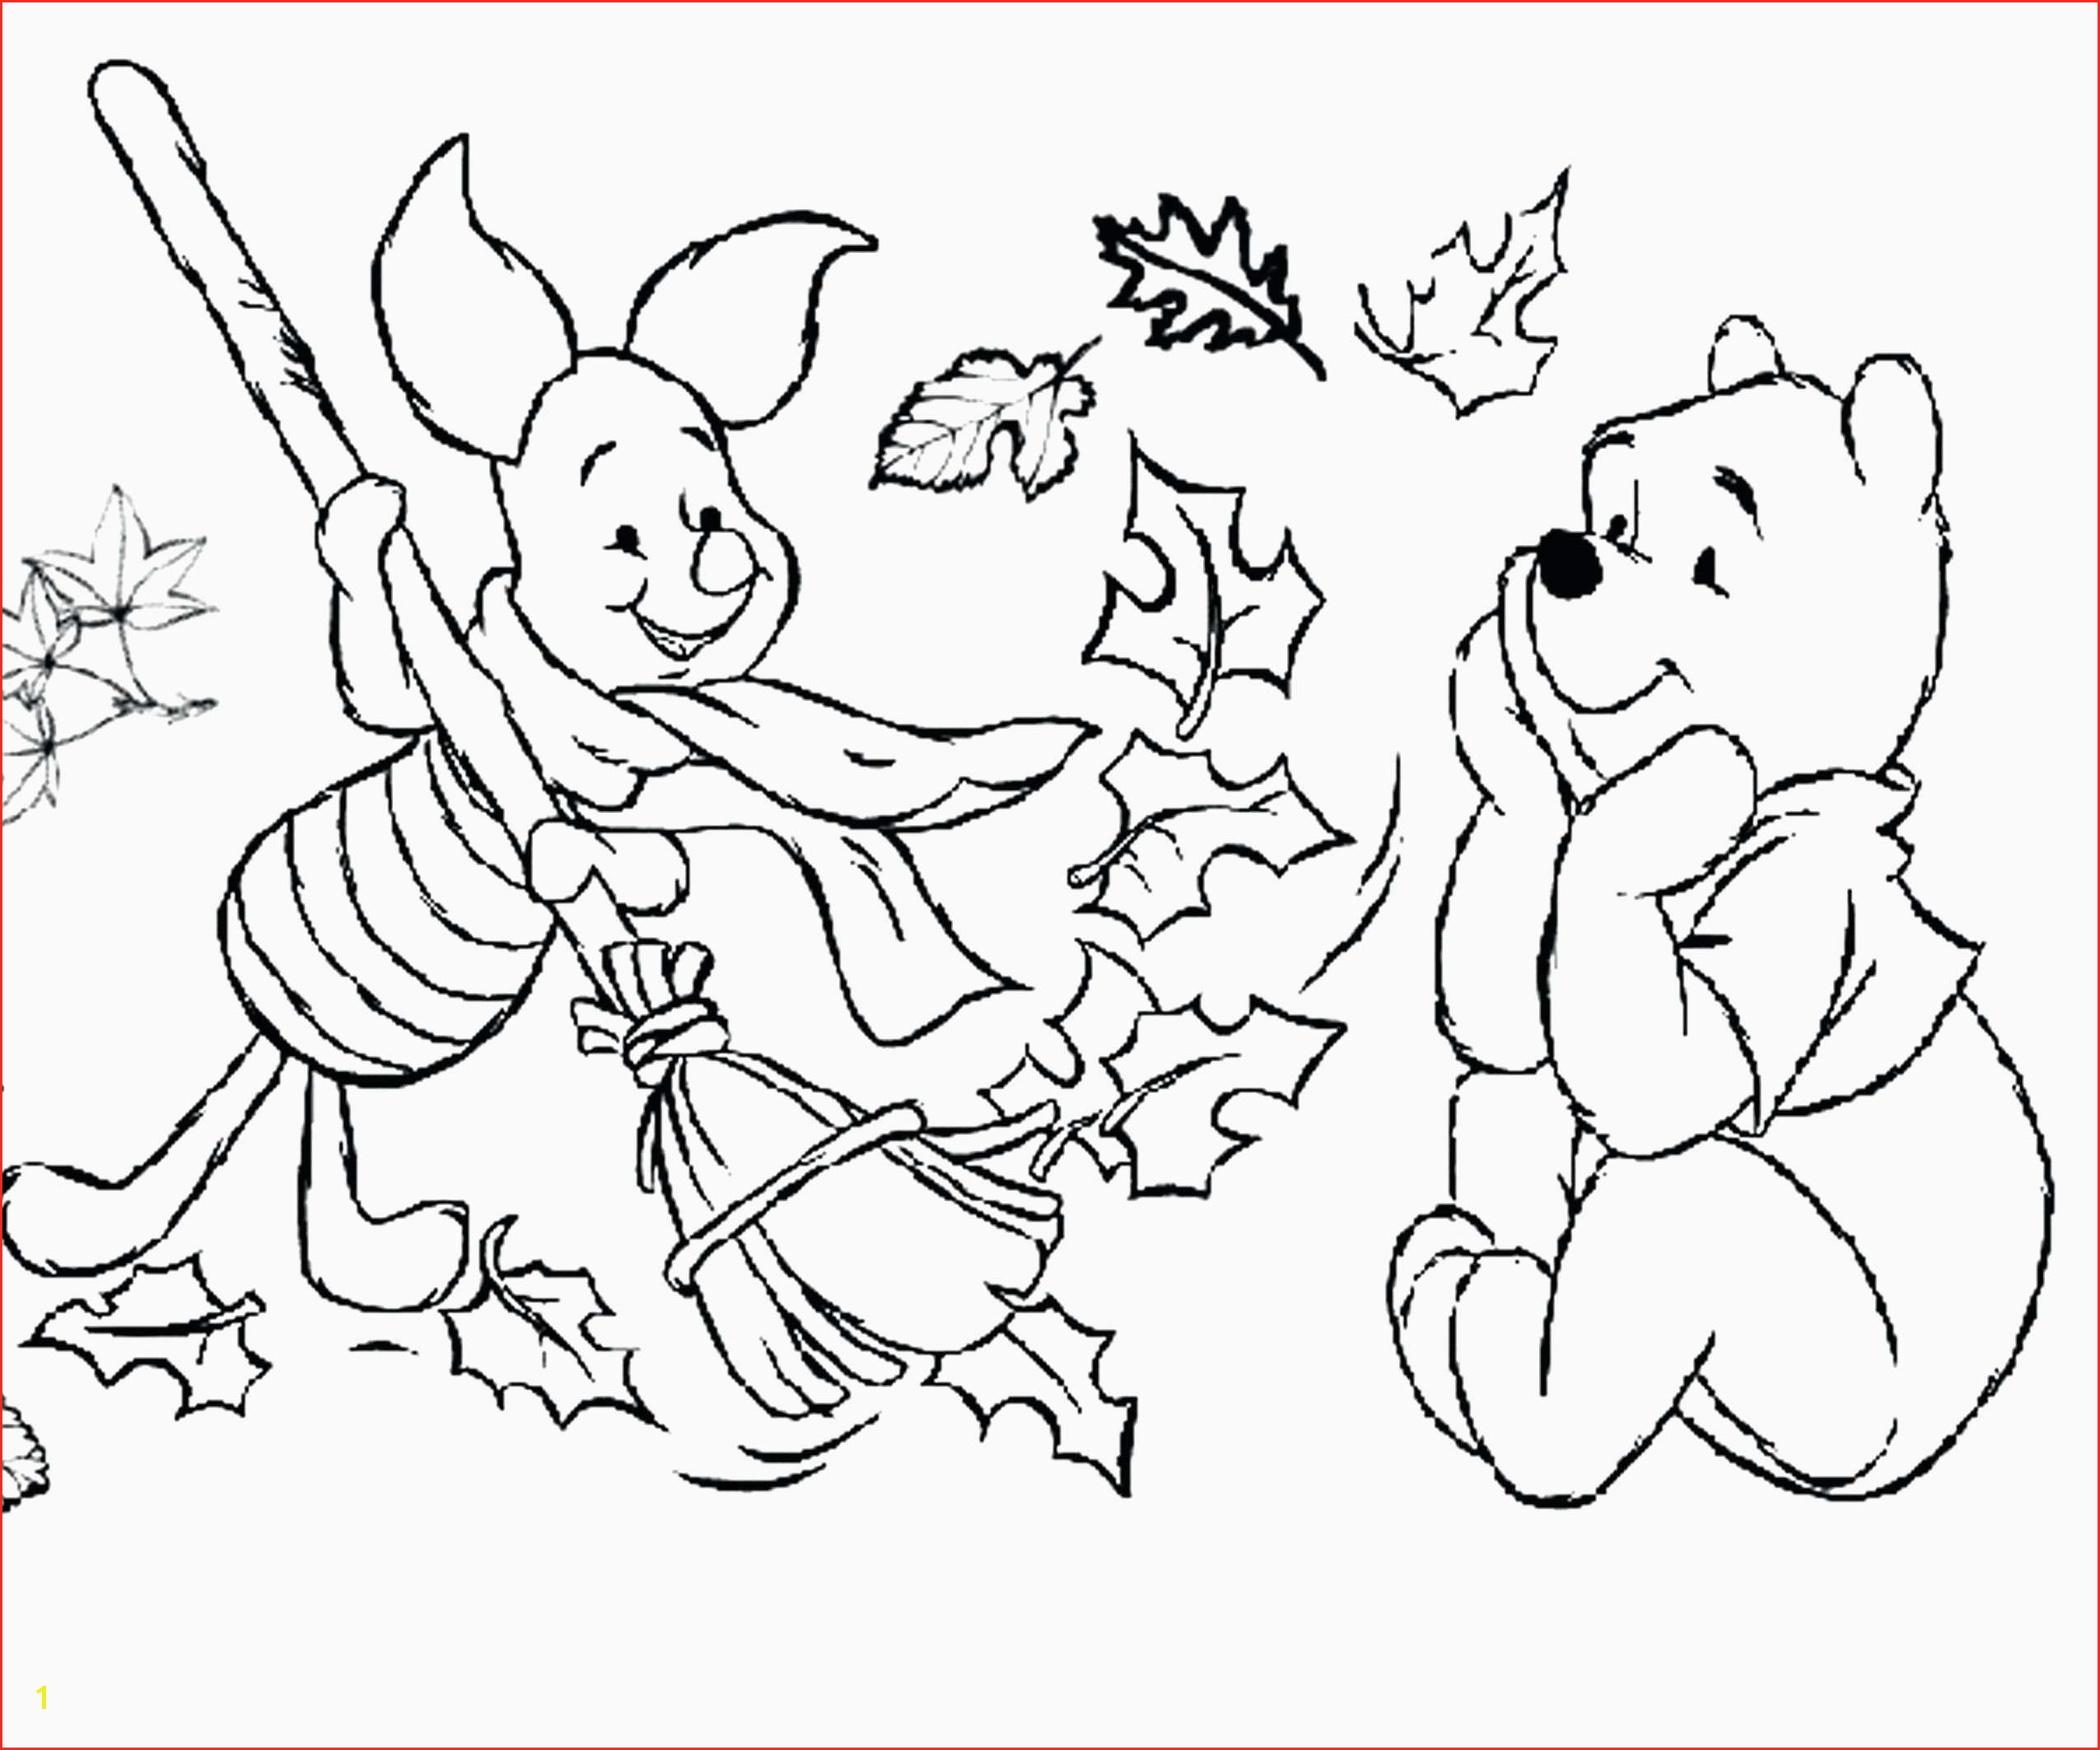 Coloring Pages For 10 Year Old Girls Coloring Games For 2 Year Old 28999 Coloring Pages For 10 Year Old